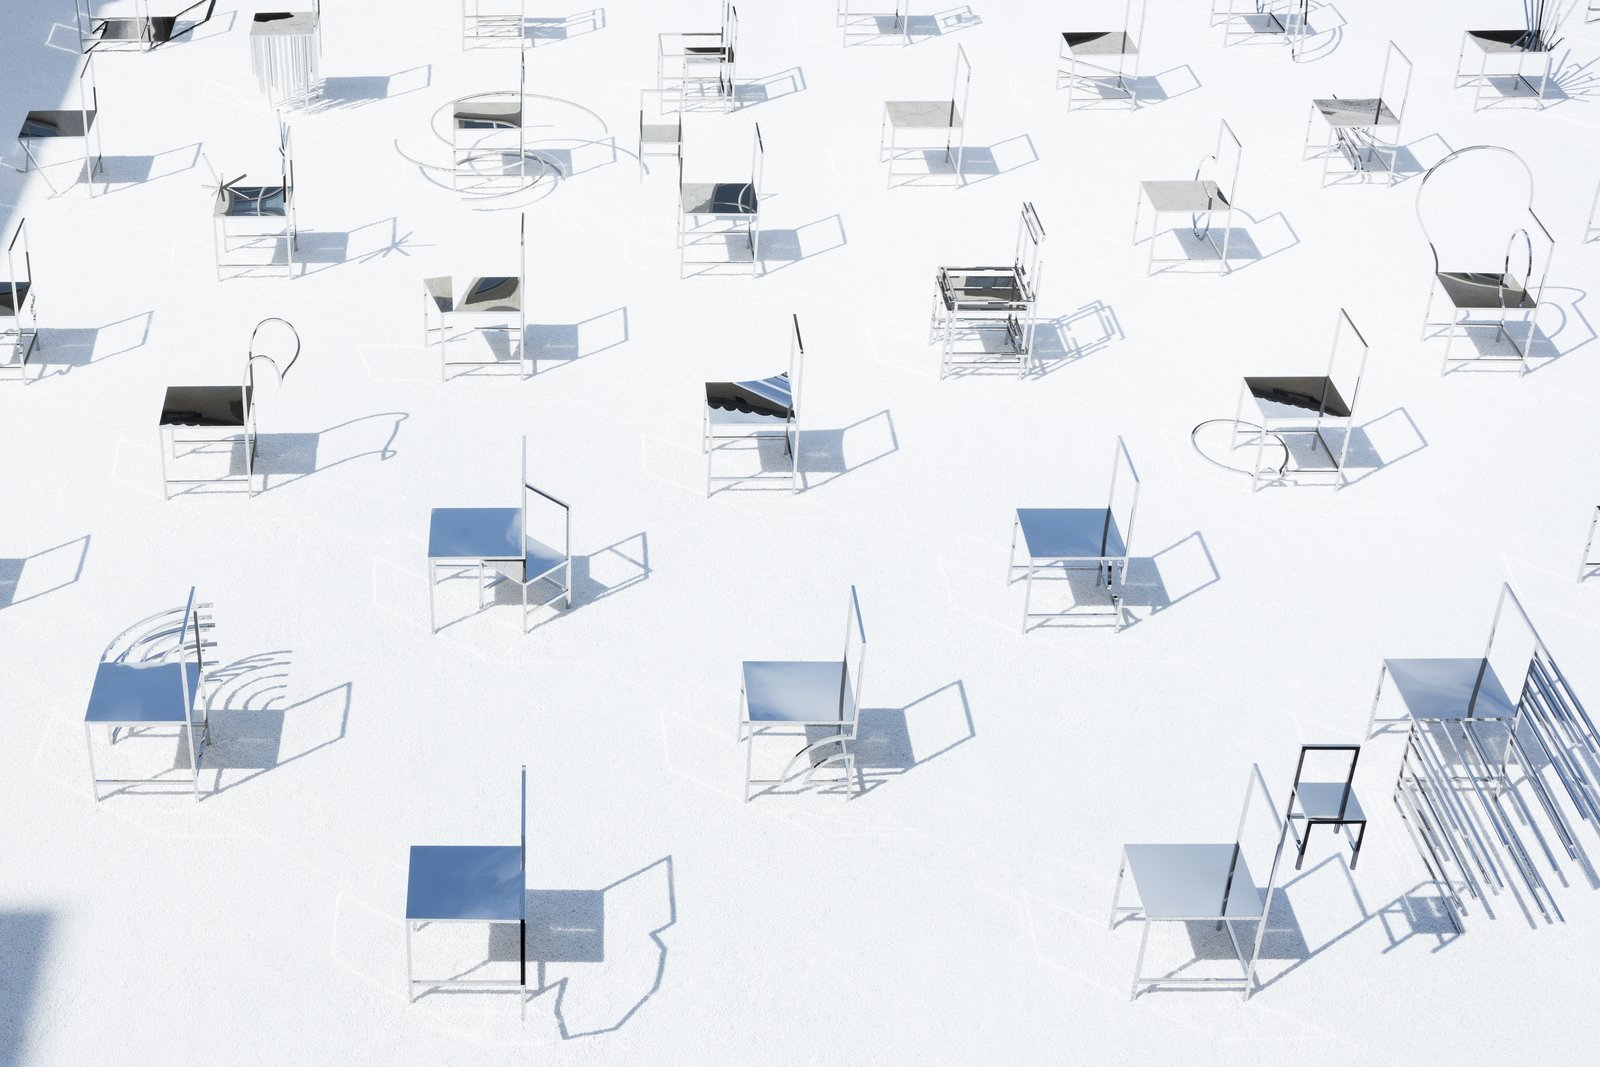 Photo 1 of 7 in Pull Up a Chair: An Interview With Designer Oki Sato